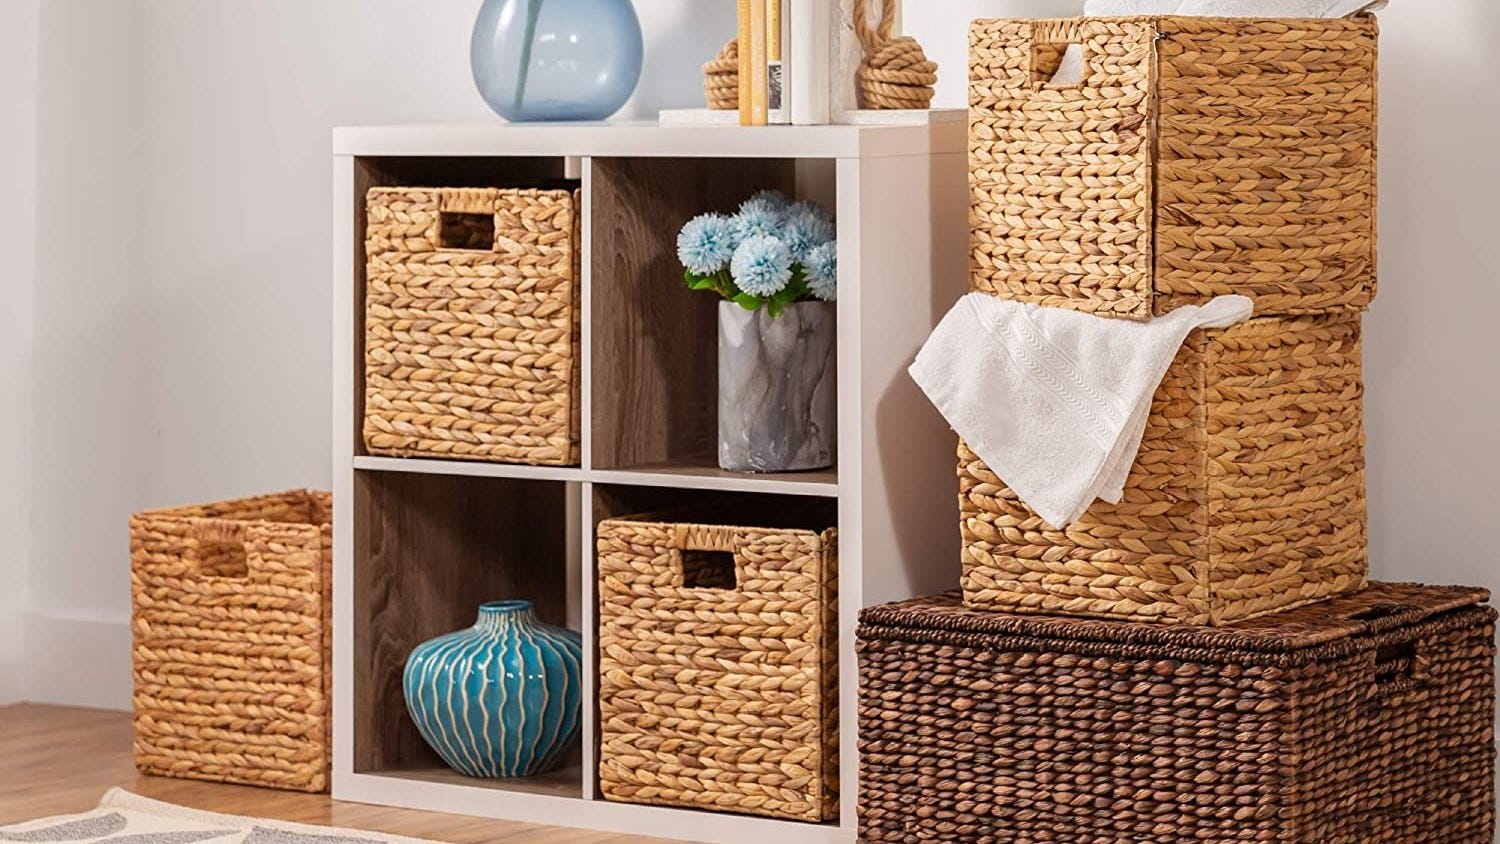 Cubicle shelving with wicker storage bins.